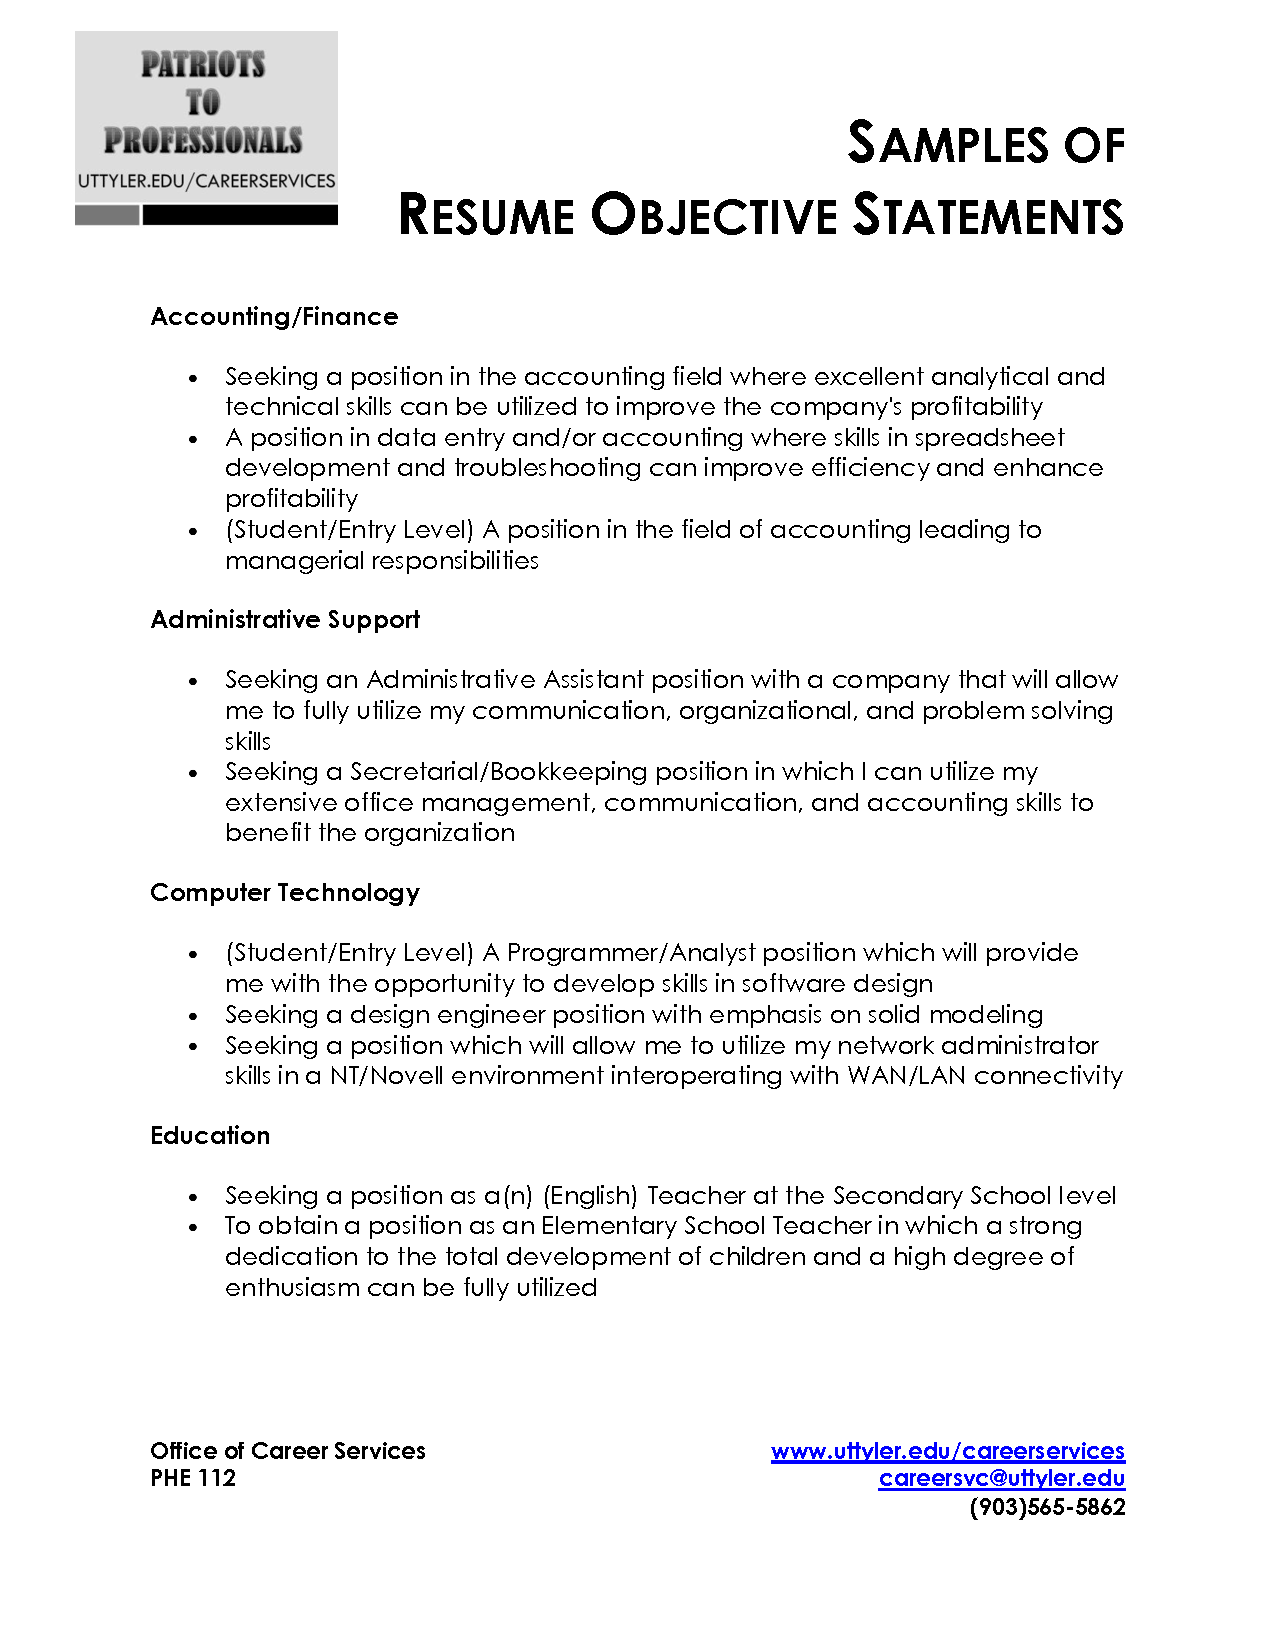 Objective Statement For Resume  Teacher Resume Objective Statement